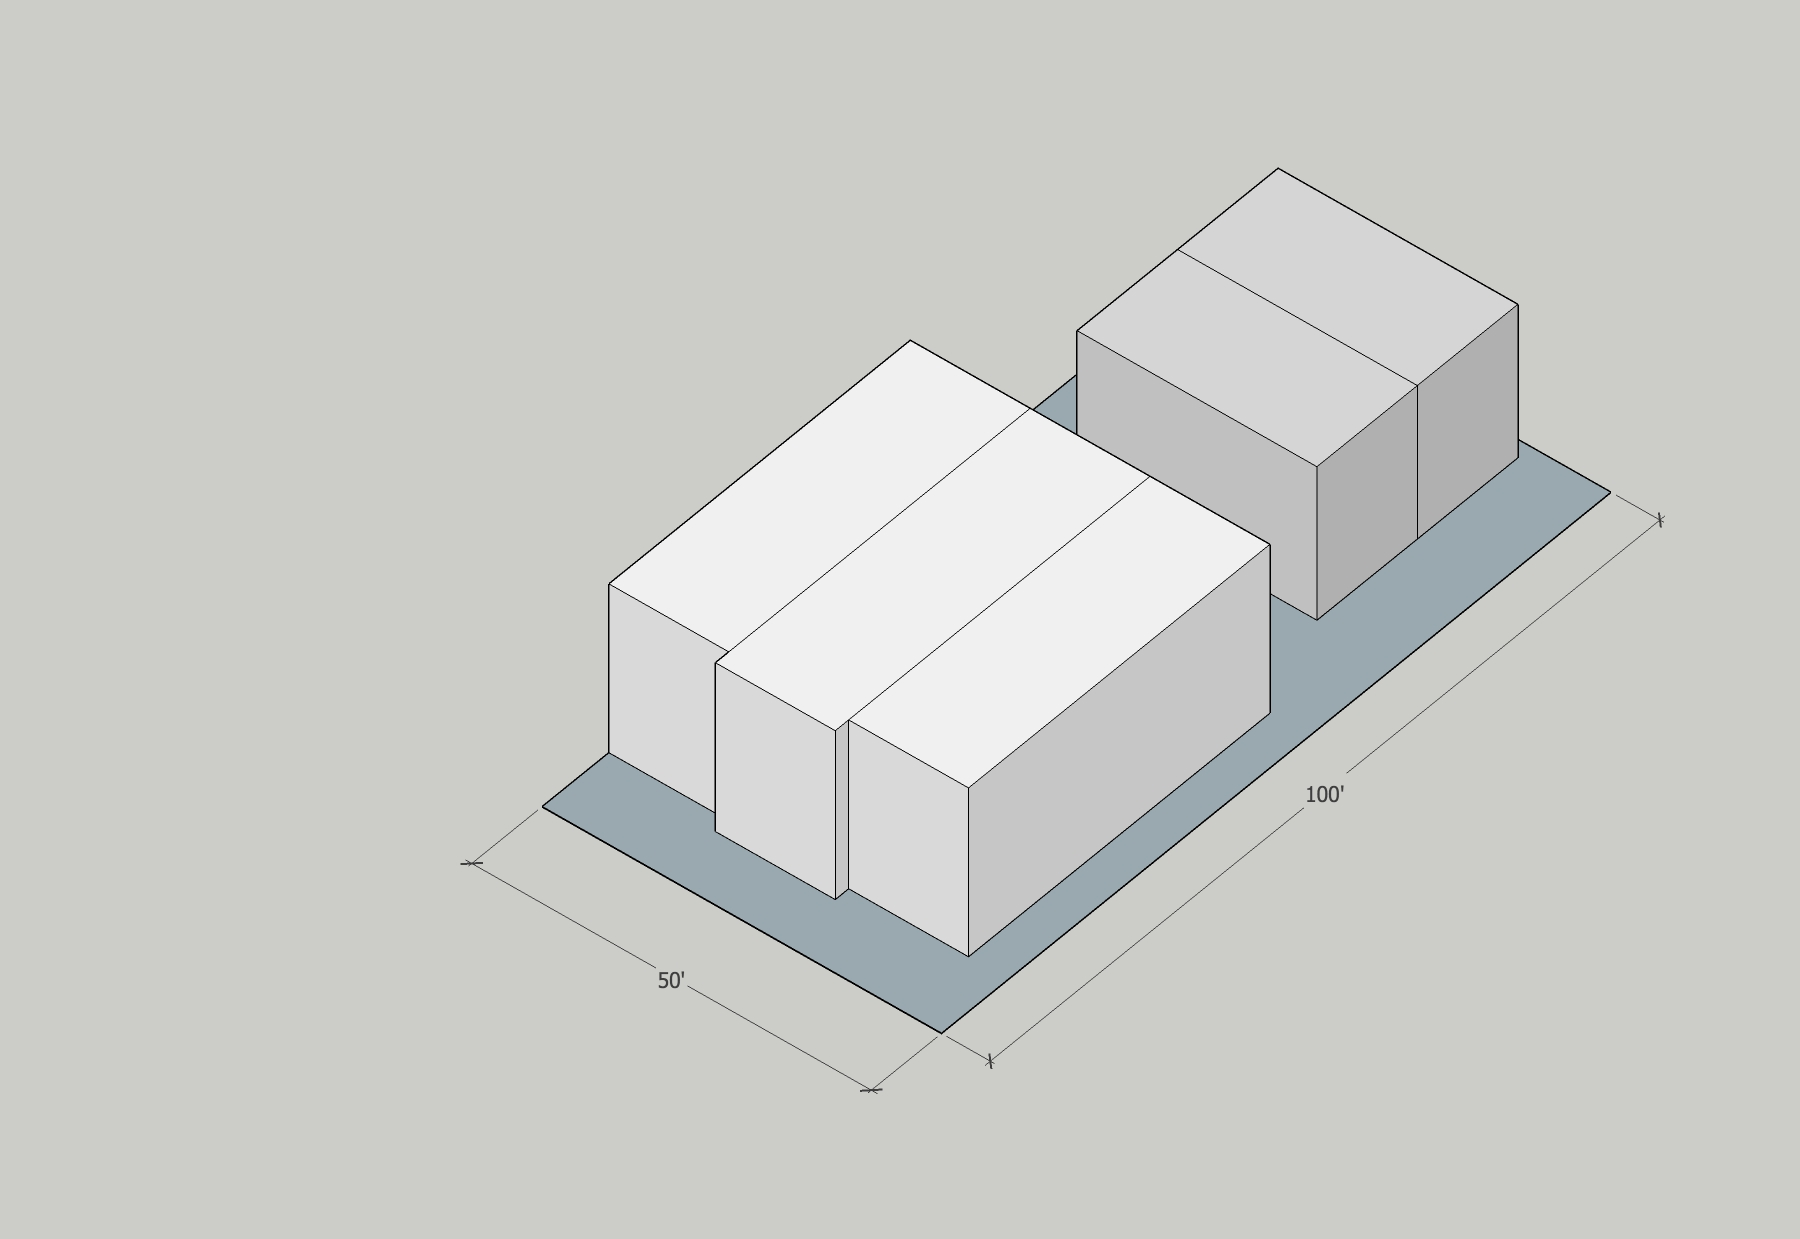 Site Data (just the 5000sf containing the two new structures) Building Area:  Building 1 (Front) 4500sf Building 2 (Rear) 1800sf  Neighborhood:  Hosford-Abernethy  Year Built:  2014 (per Assessor data, actual phasing unknown)  Typology:  side-by-side townhouse/rowhouse  Units:  5 (3 in phase I, 2 in phase II)  Stories:  2  Site Area:  5000sf  Building Area:  6300sf  FAR:  1.26:1  Height: 2 stories,  25' approx.  Density:  Phase I Triplex – 26.1 du/ac Triplex + Phase II Duplex 43.6du/ac Whole Site:29.0du/ac  Parking:  on-street  Zoning:  R-1 (1du/1000sf)  Is it legal?  Yes